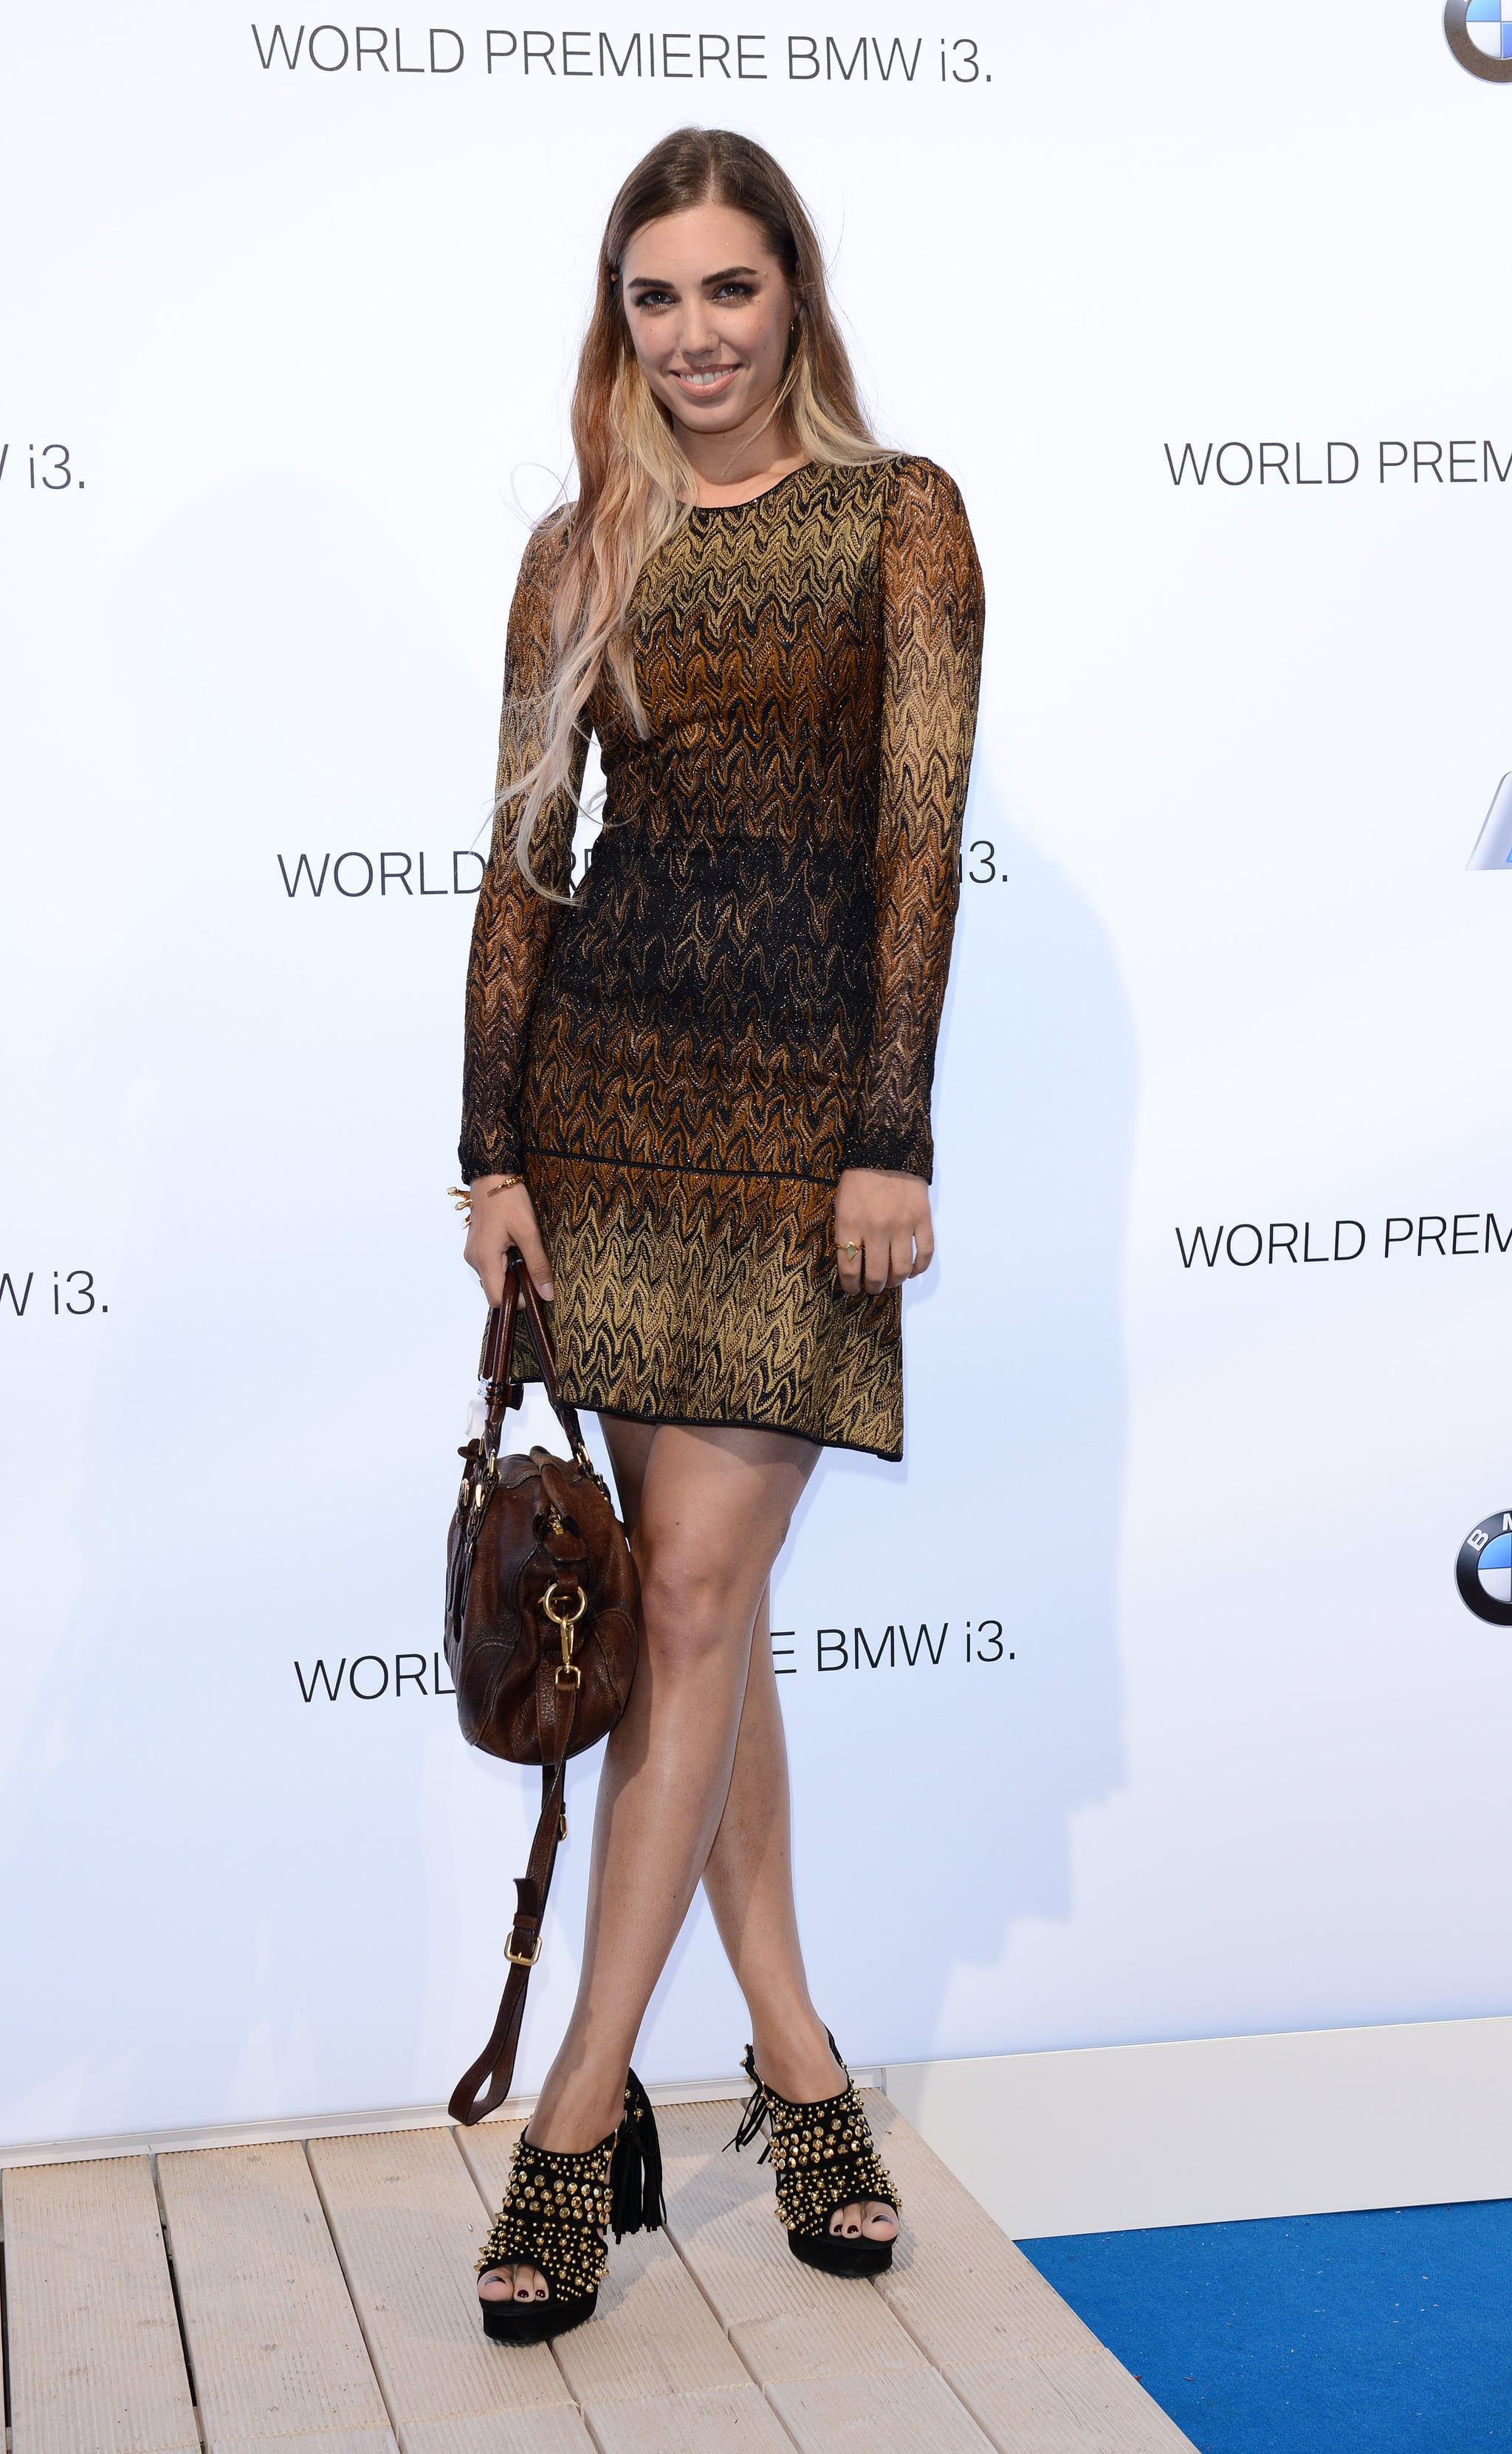 Amber Le Bon sparkled in a glittering sheath and embellished platforms at the BMW unveiling of the i3.